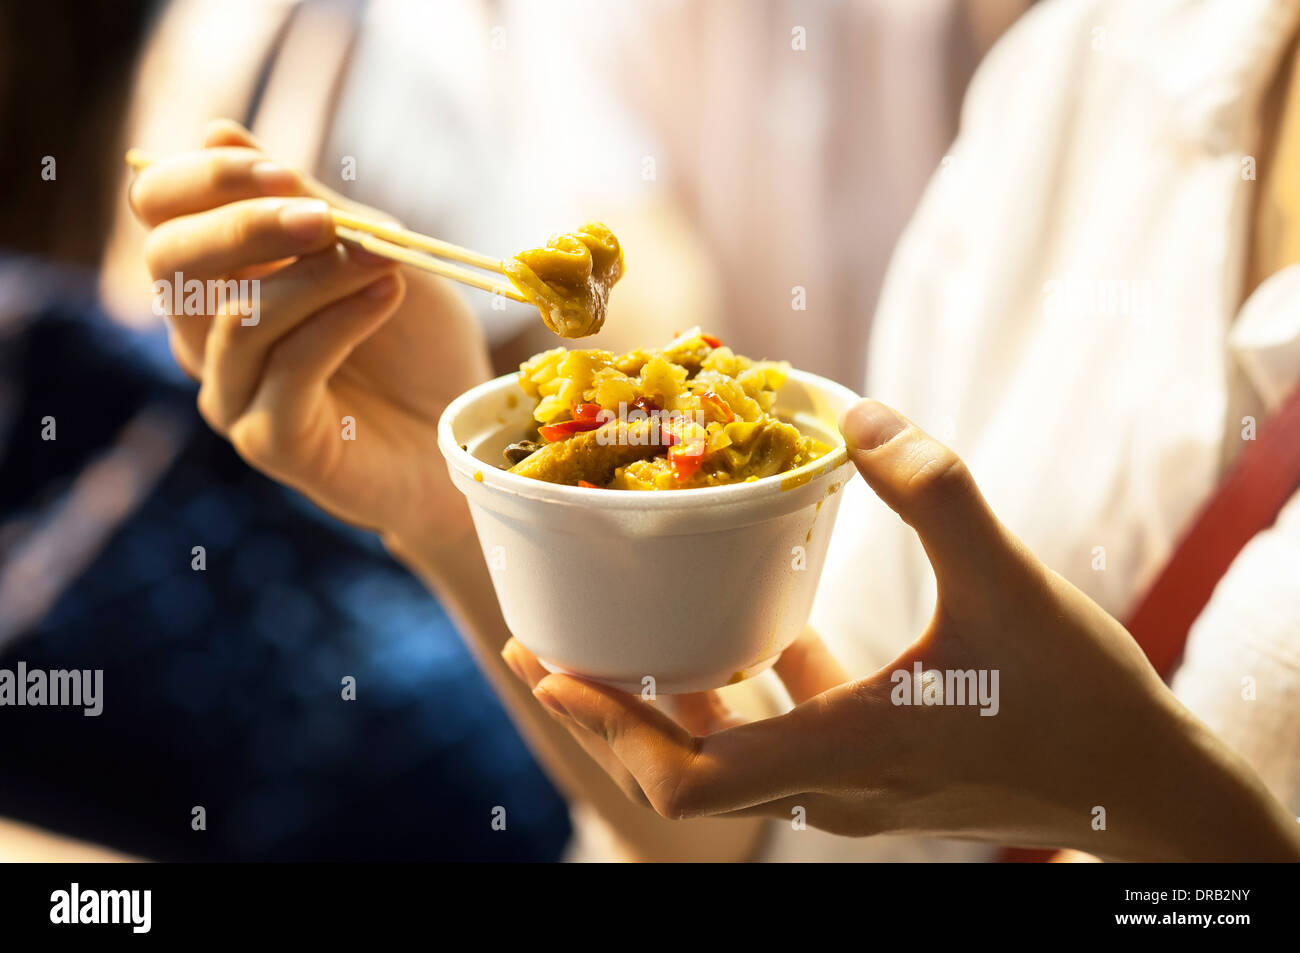 Curried organs in a pot, Hong Kong street food - Stock Image